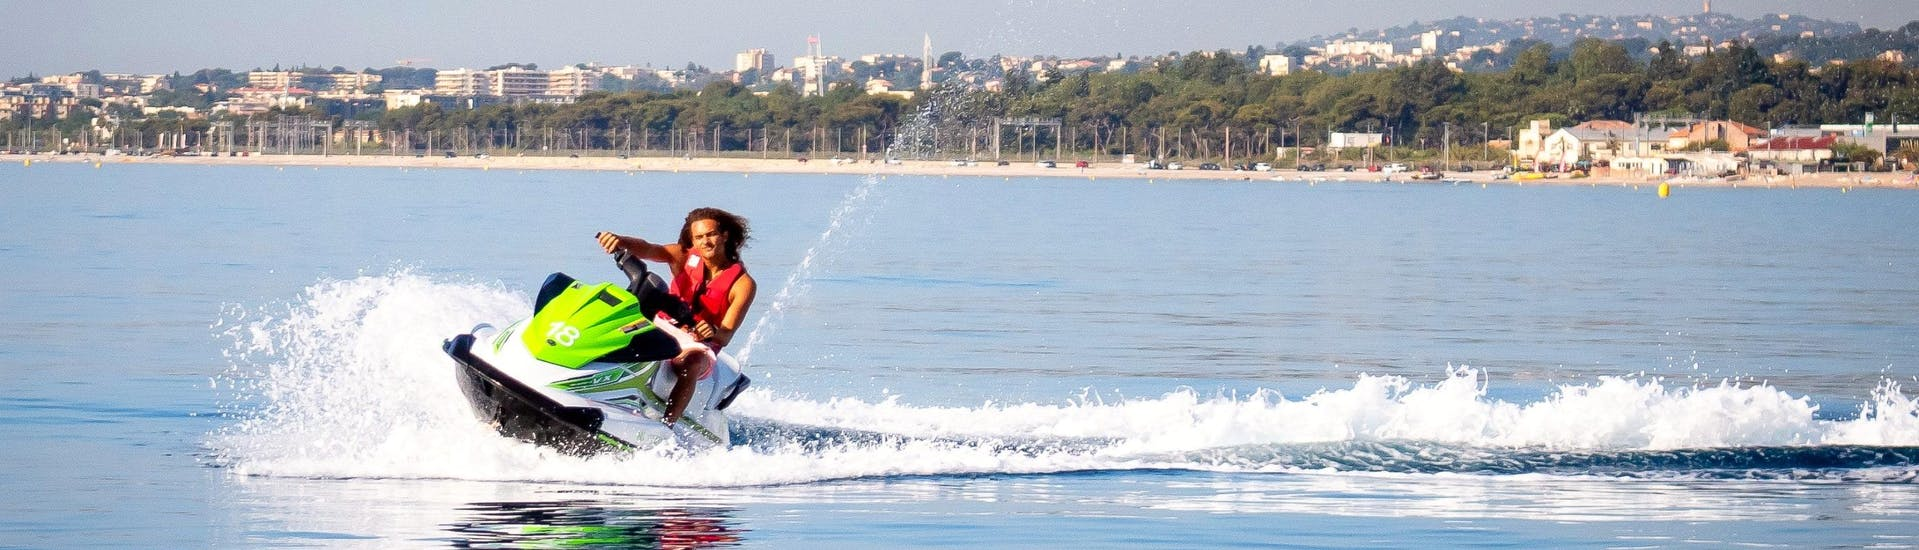 A man is having fun while jet skiing during his tour with Jet Ski Hire in Villeneuve-Loubet with Plage des Marines.